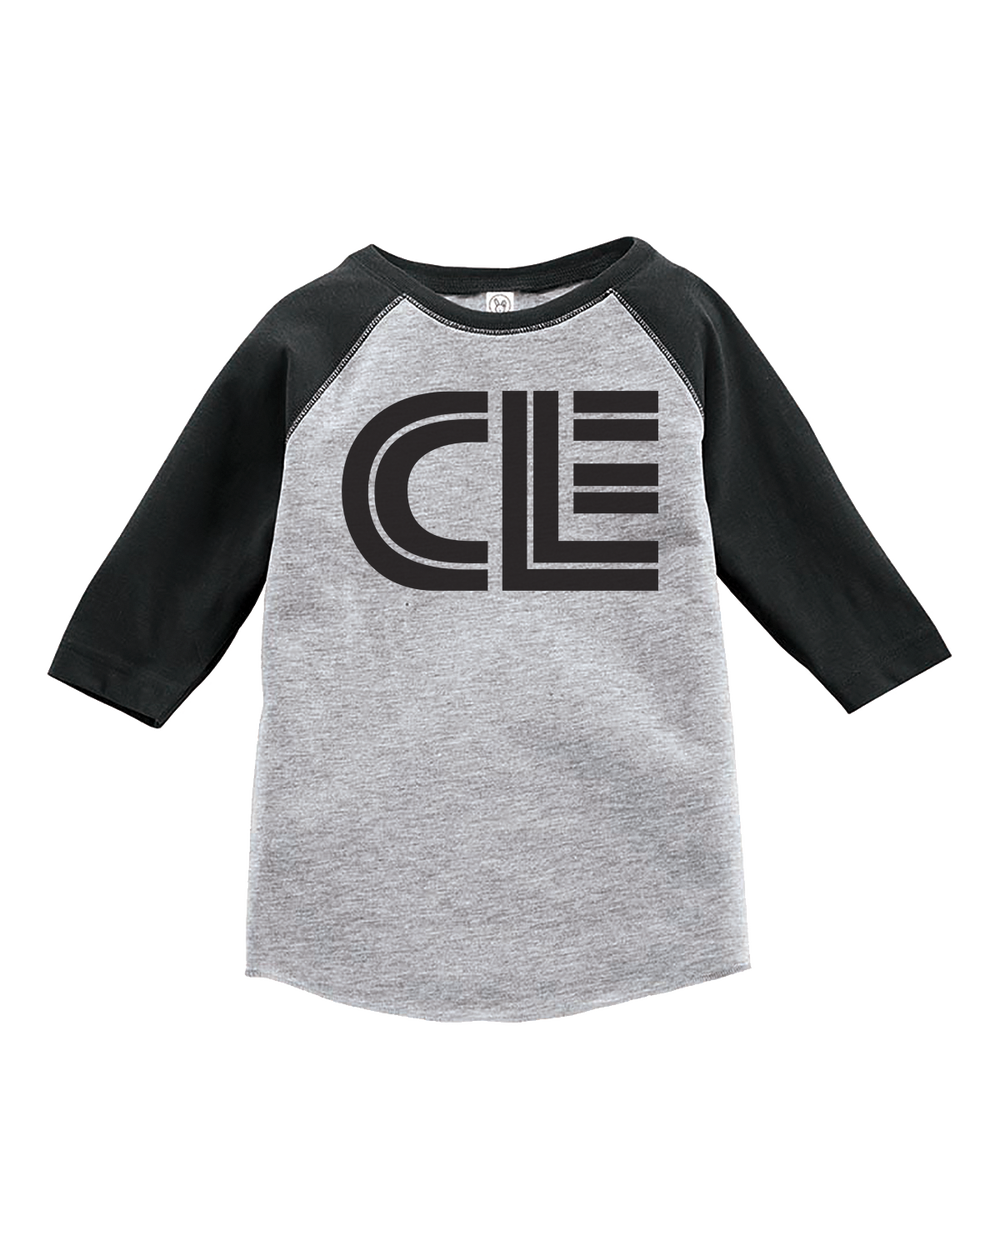 Image of CLE Toddler Baseball Tee